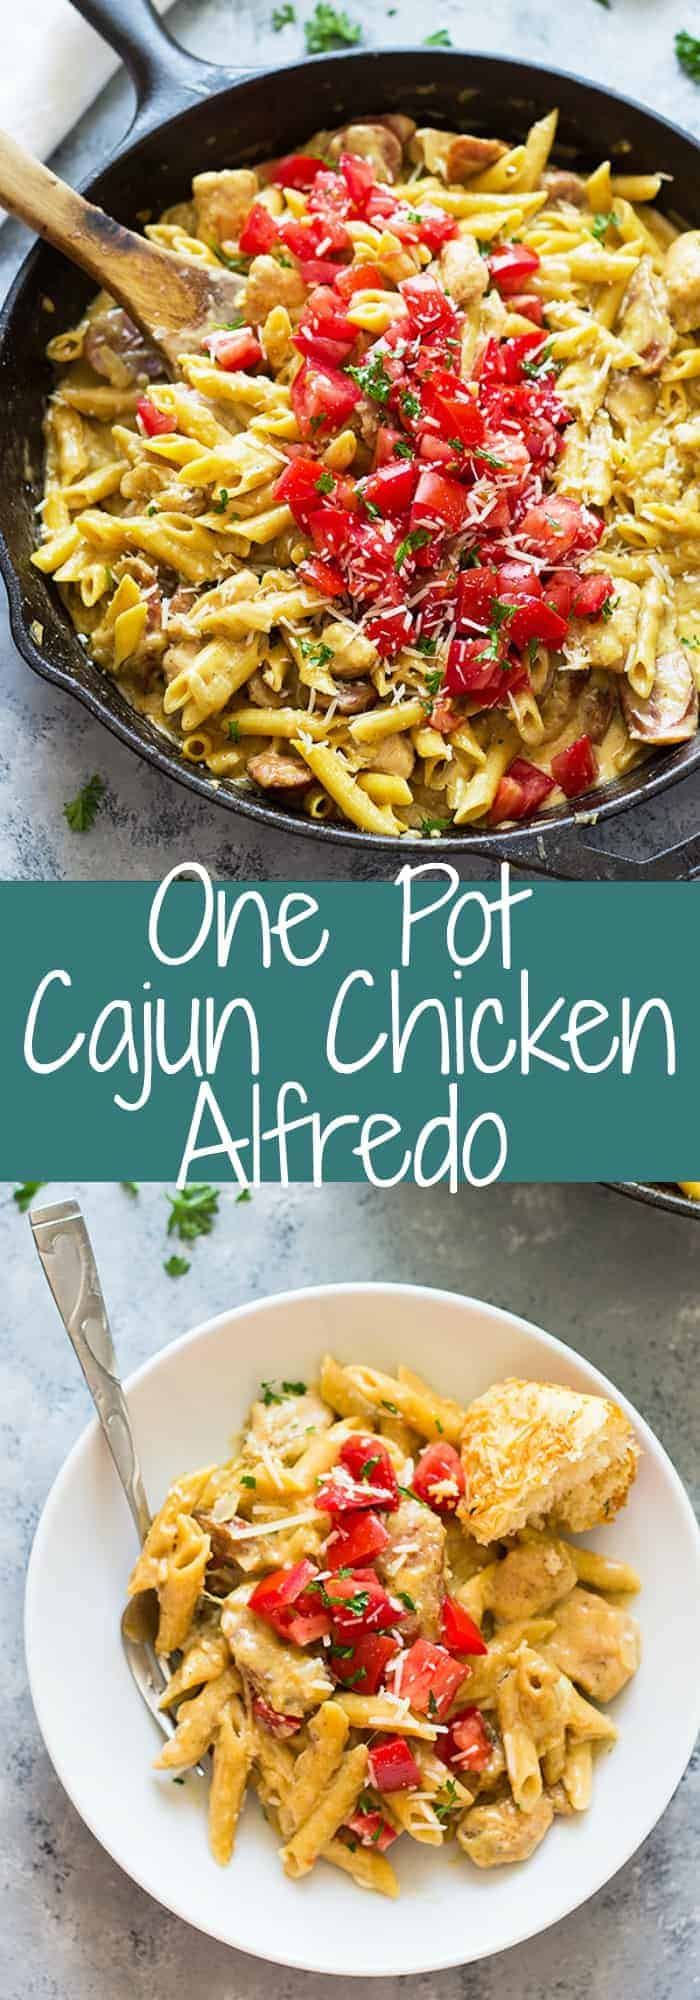 One Pot Cajun Chicken Alfredo is a quick and easy 30 minute meal that is full of flavor! | www.countrysidecravings.com